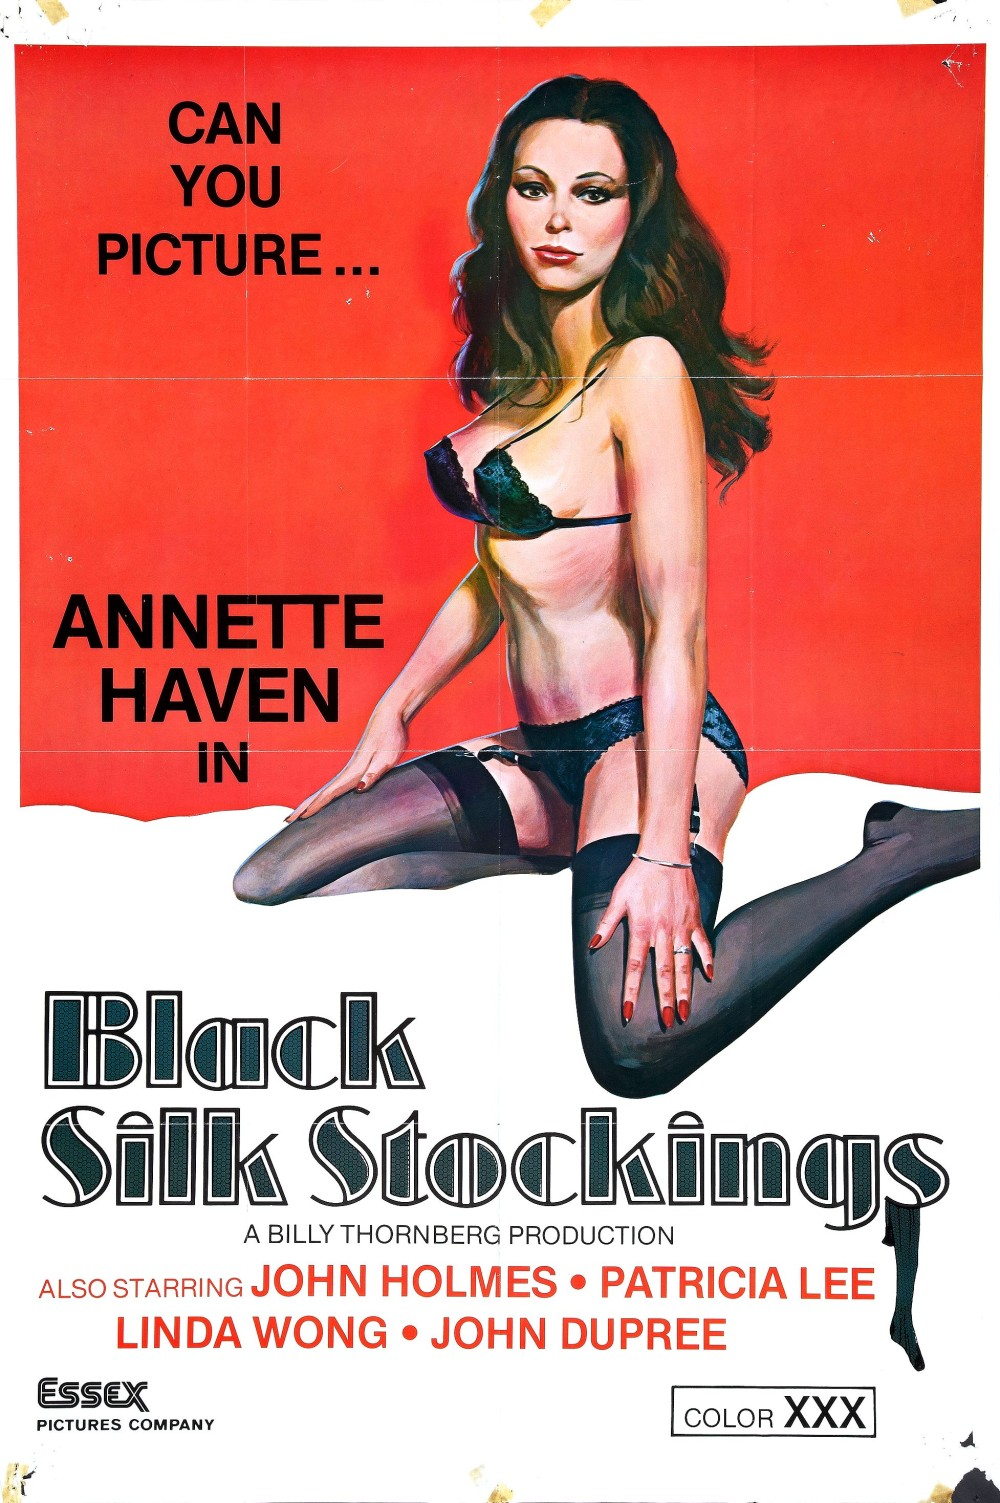 Black Silk Stockings (1978)